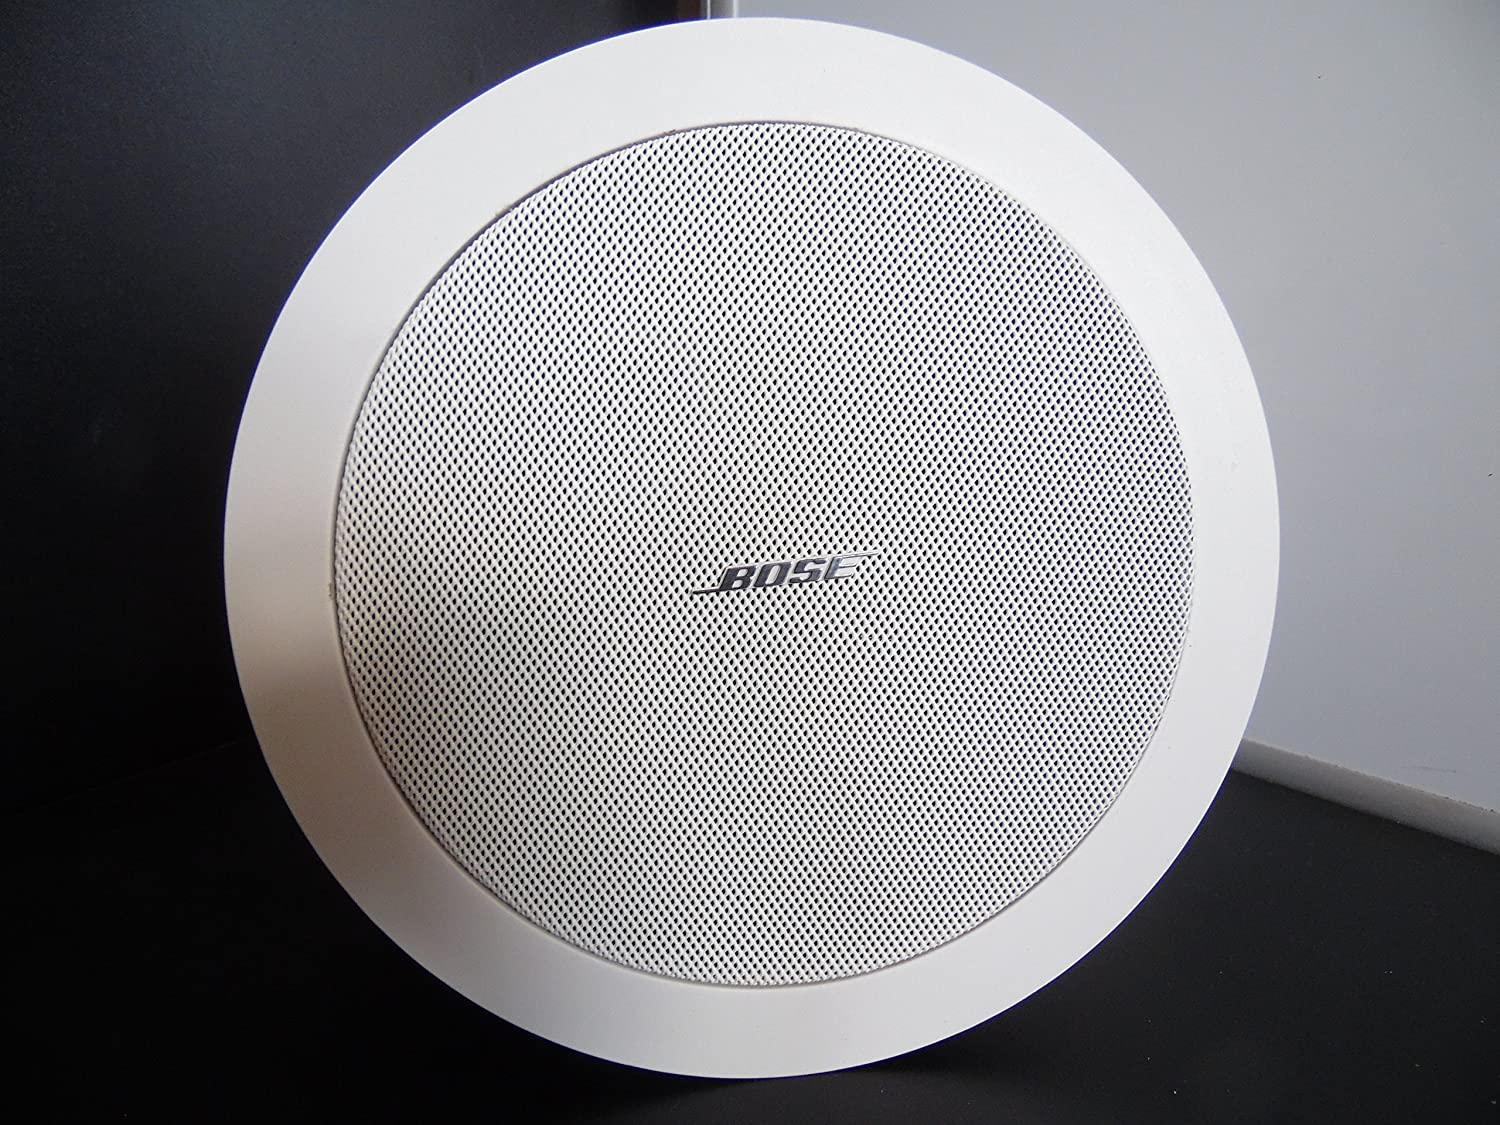 Bose FreeSpace DS 16F | Full Range Ceiling Flush Mount Loudspeaker White FreeSpace DS 16F White